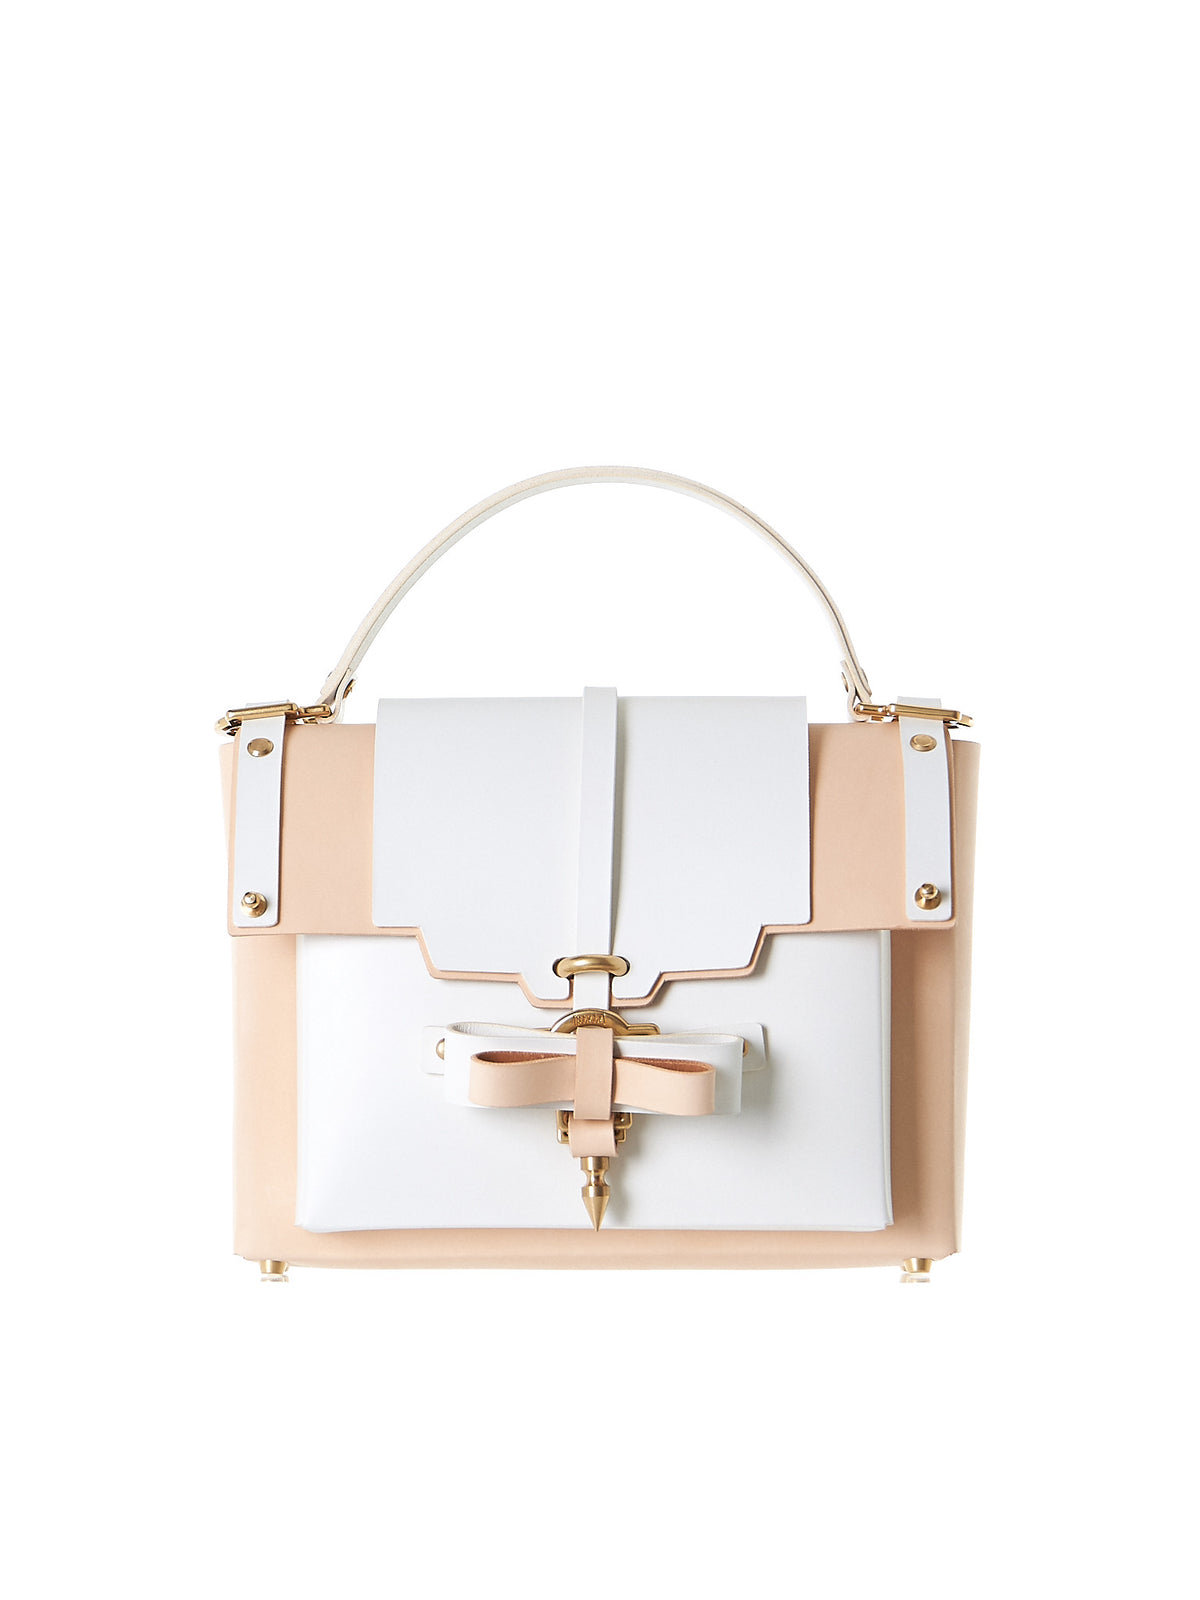 Bow Buckle Bag (NPSS17-04-WHITE-NUDE) - H. Lorenzo